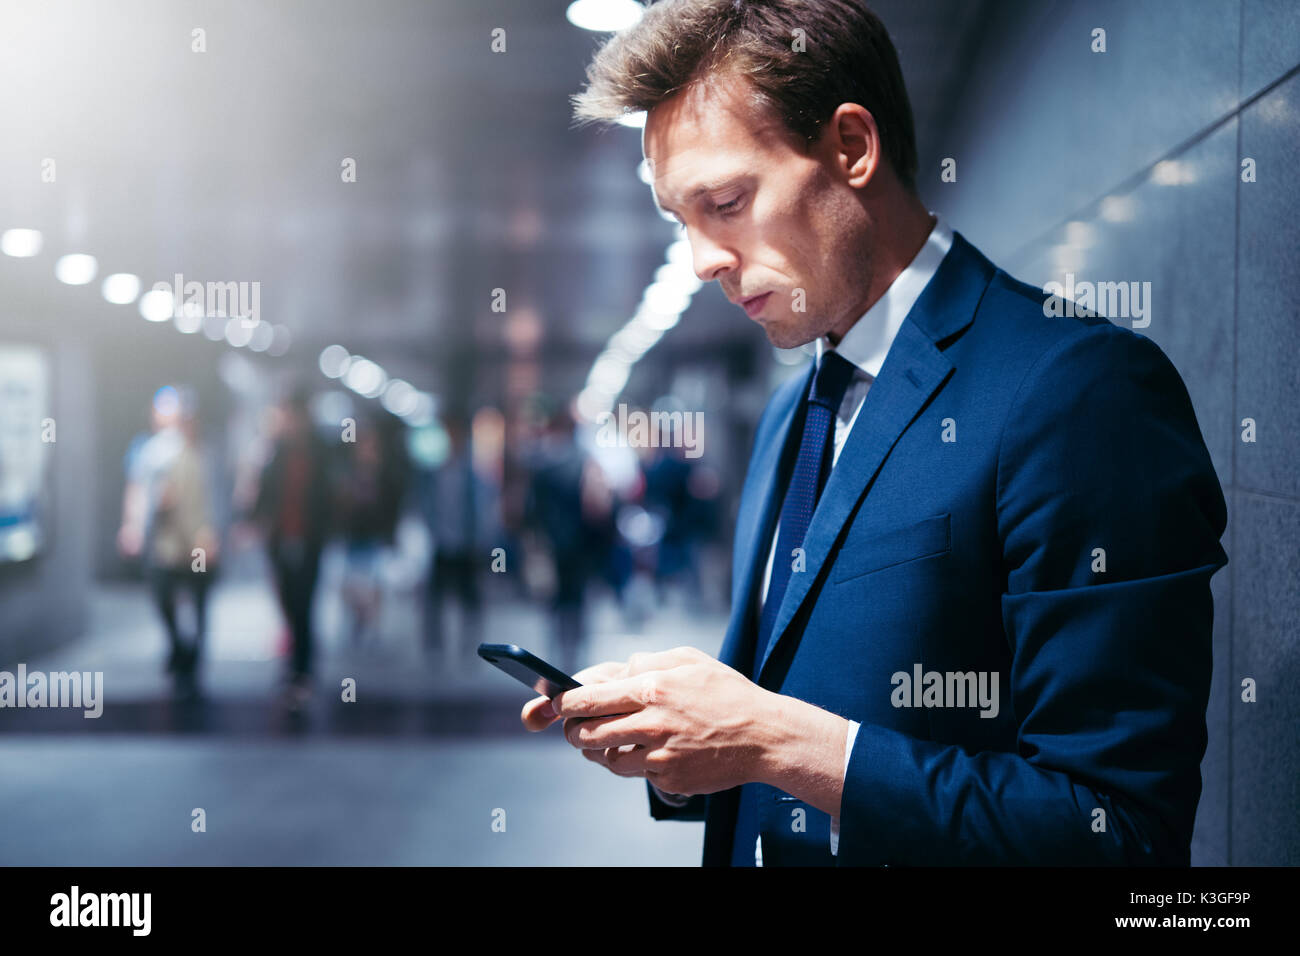 Young businessman standing on a subway platform during his morning commute reading text messages on his cellphone - Stock Image